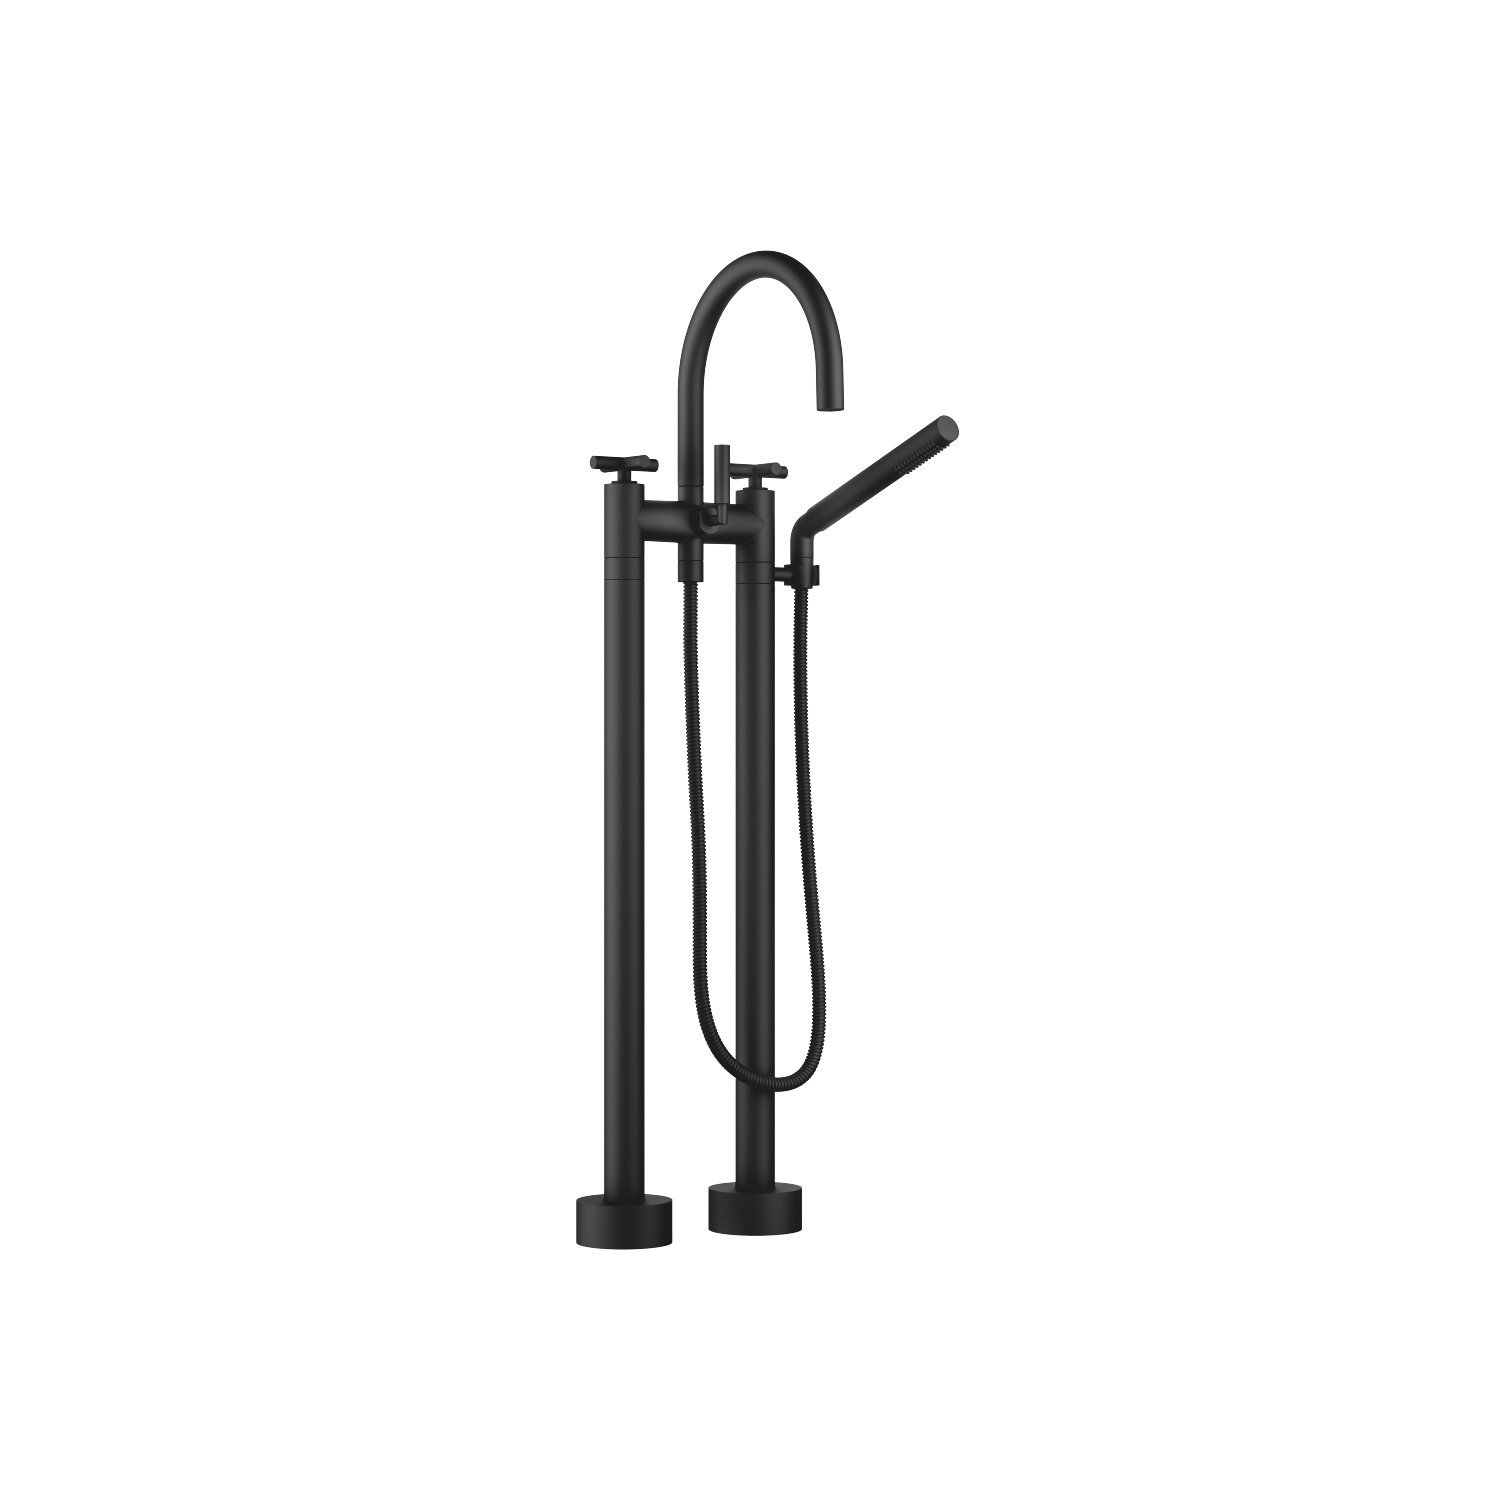 Two-hole bath mixer for free-standing assembly with hand shower set - matt black